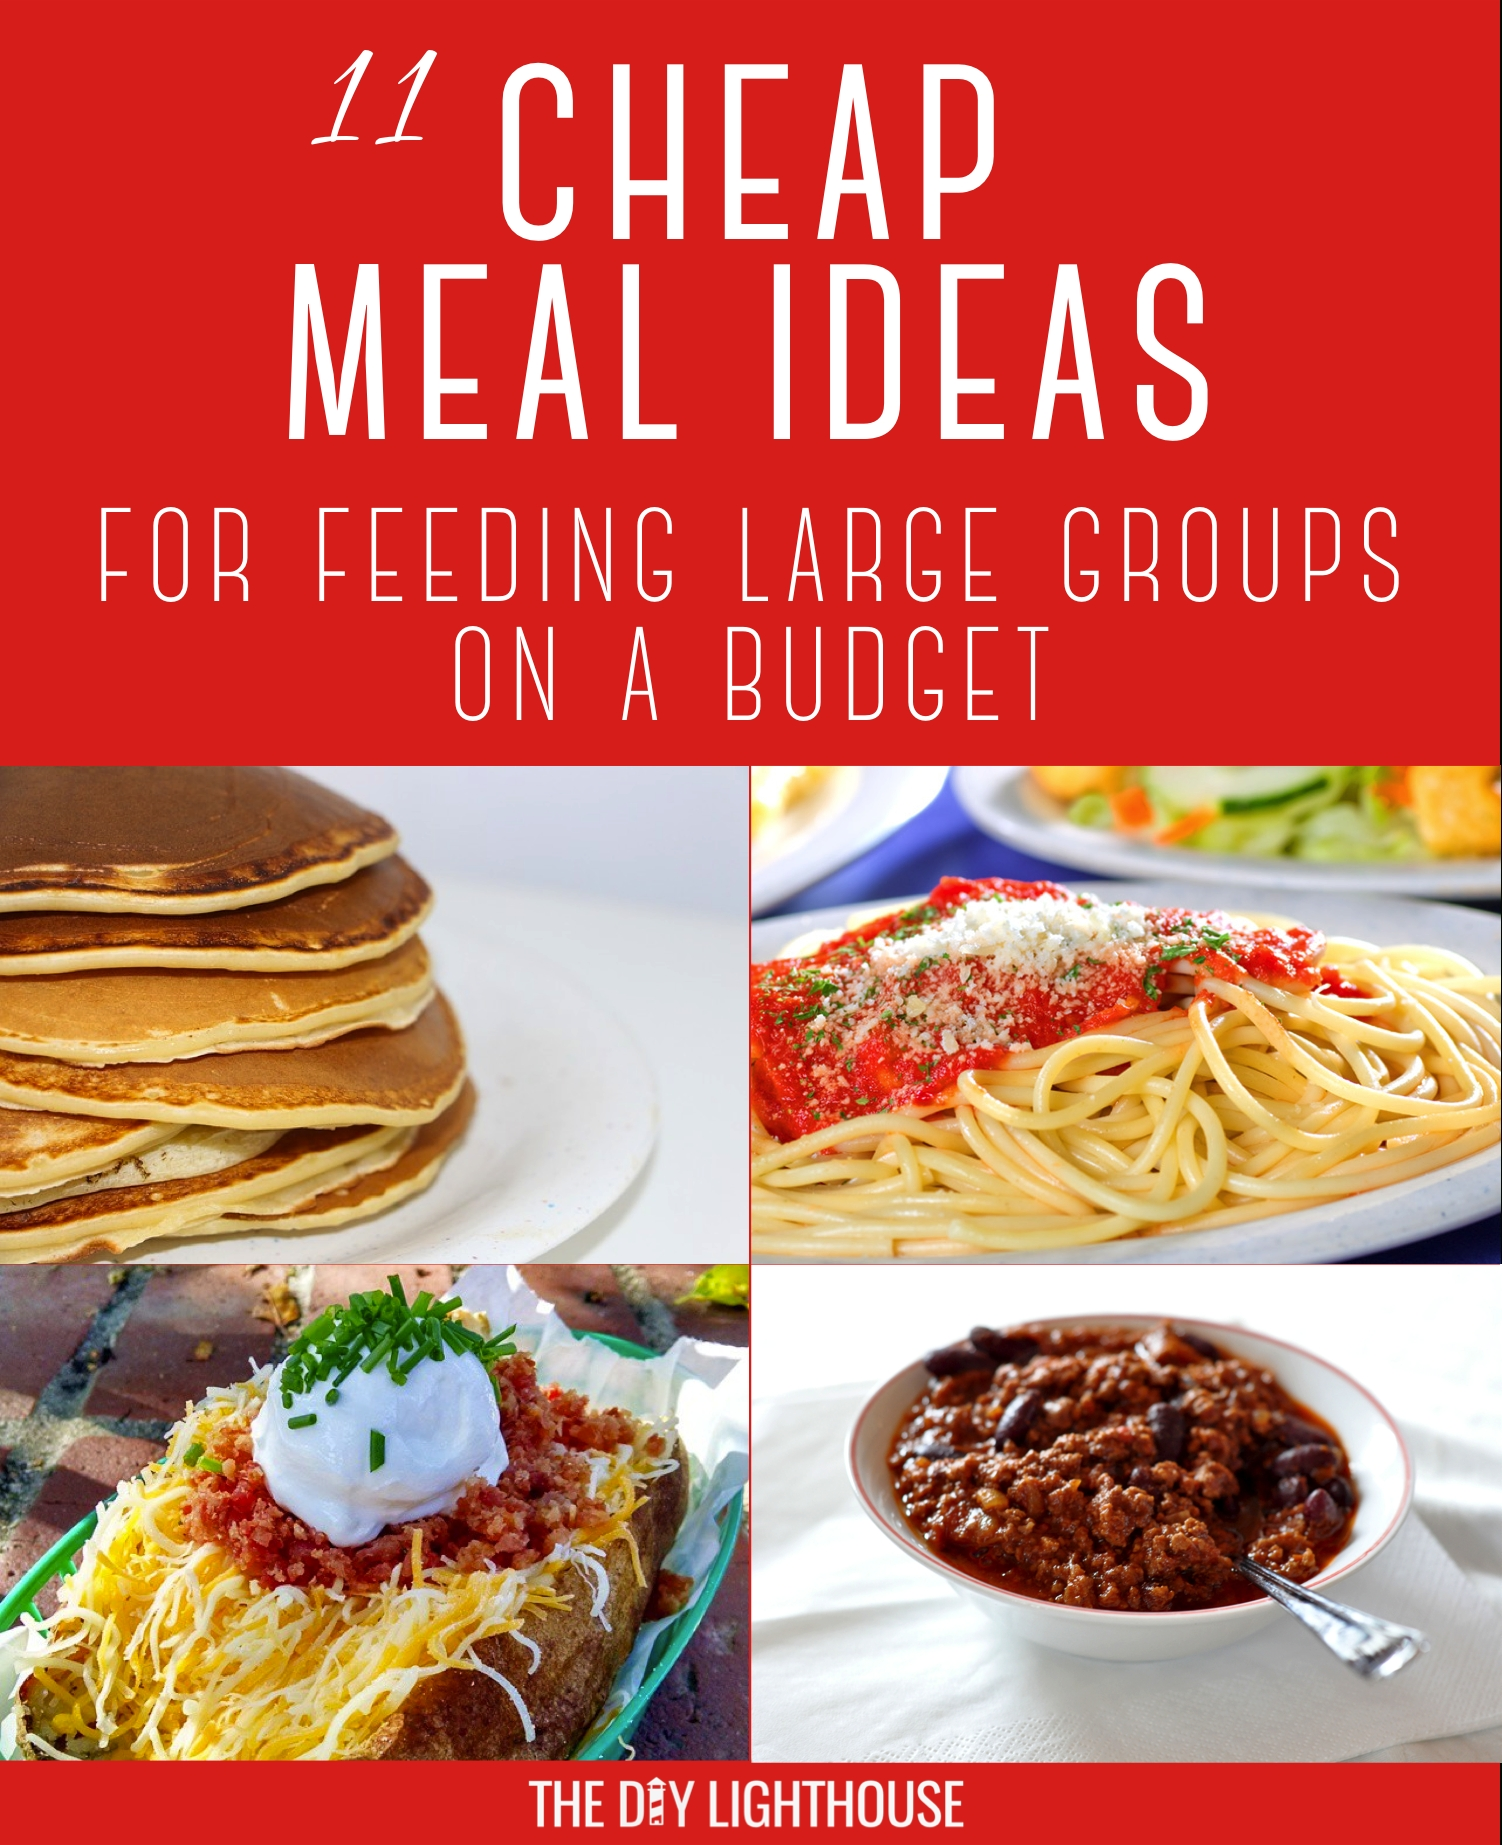 10 Fabulous Dinner Ideas On A Budget cheap meals for feeding large groups 22 2021